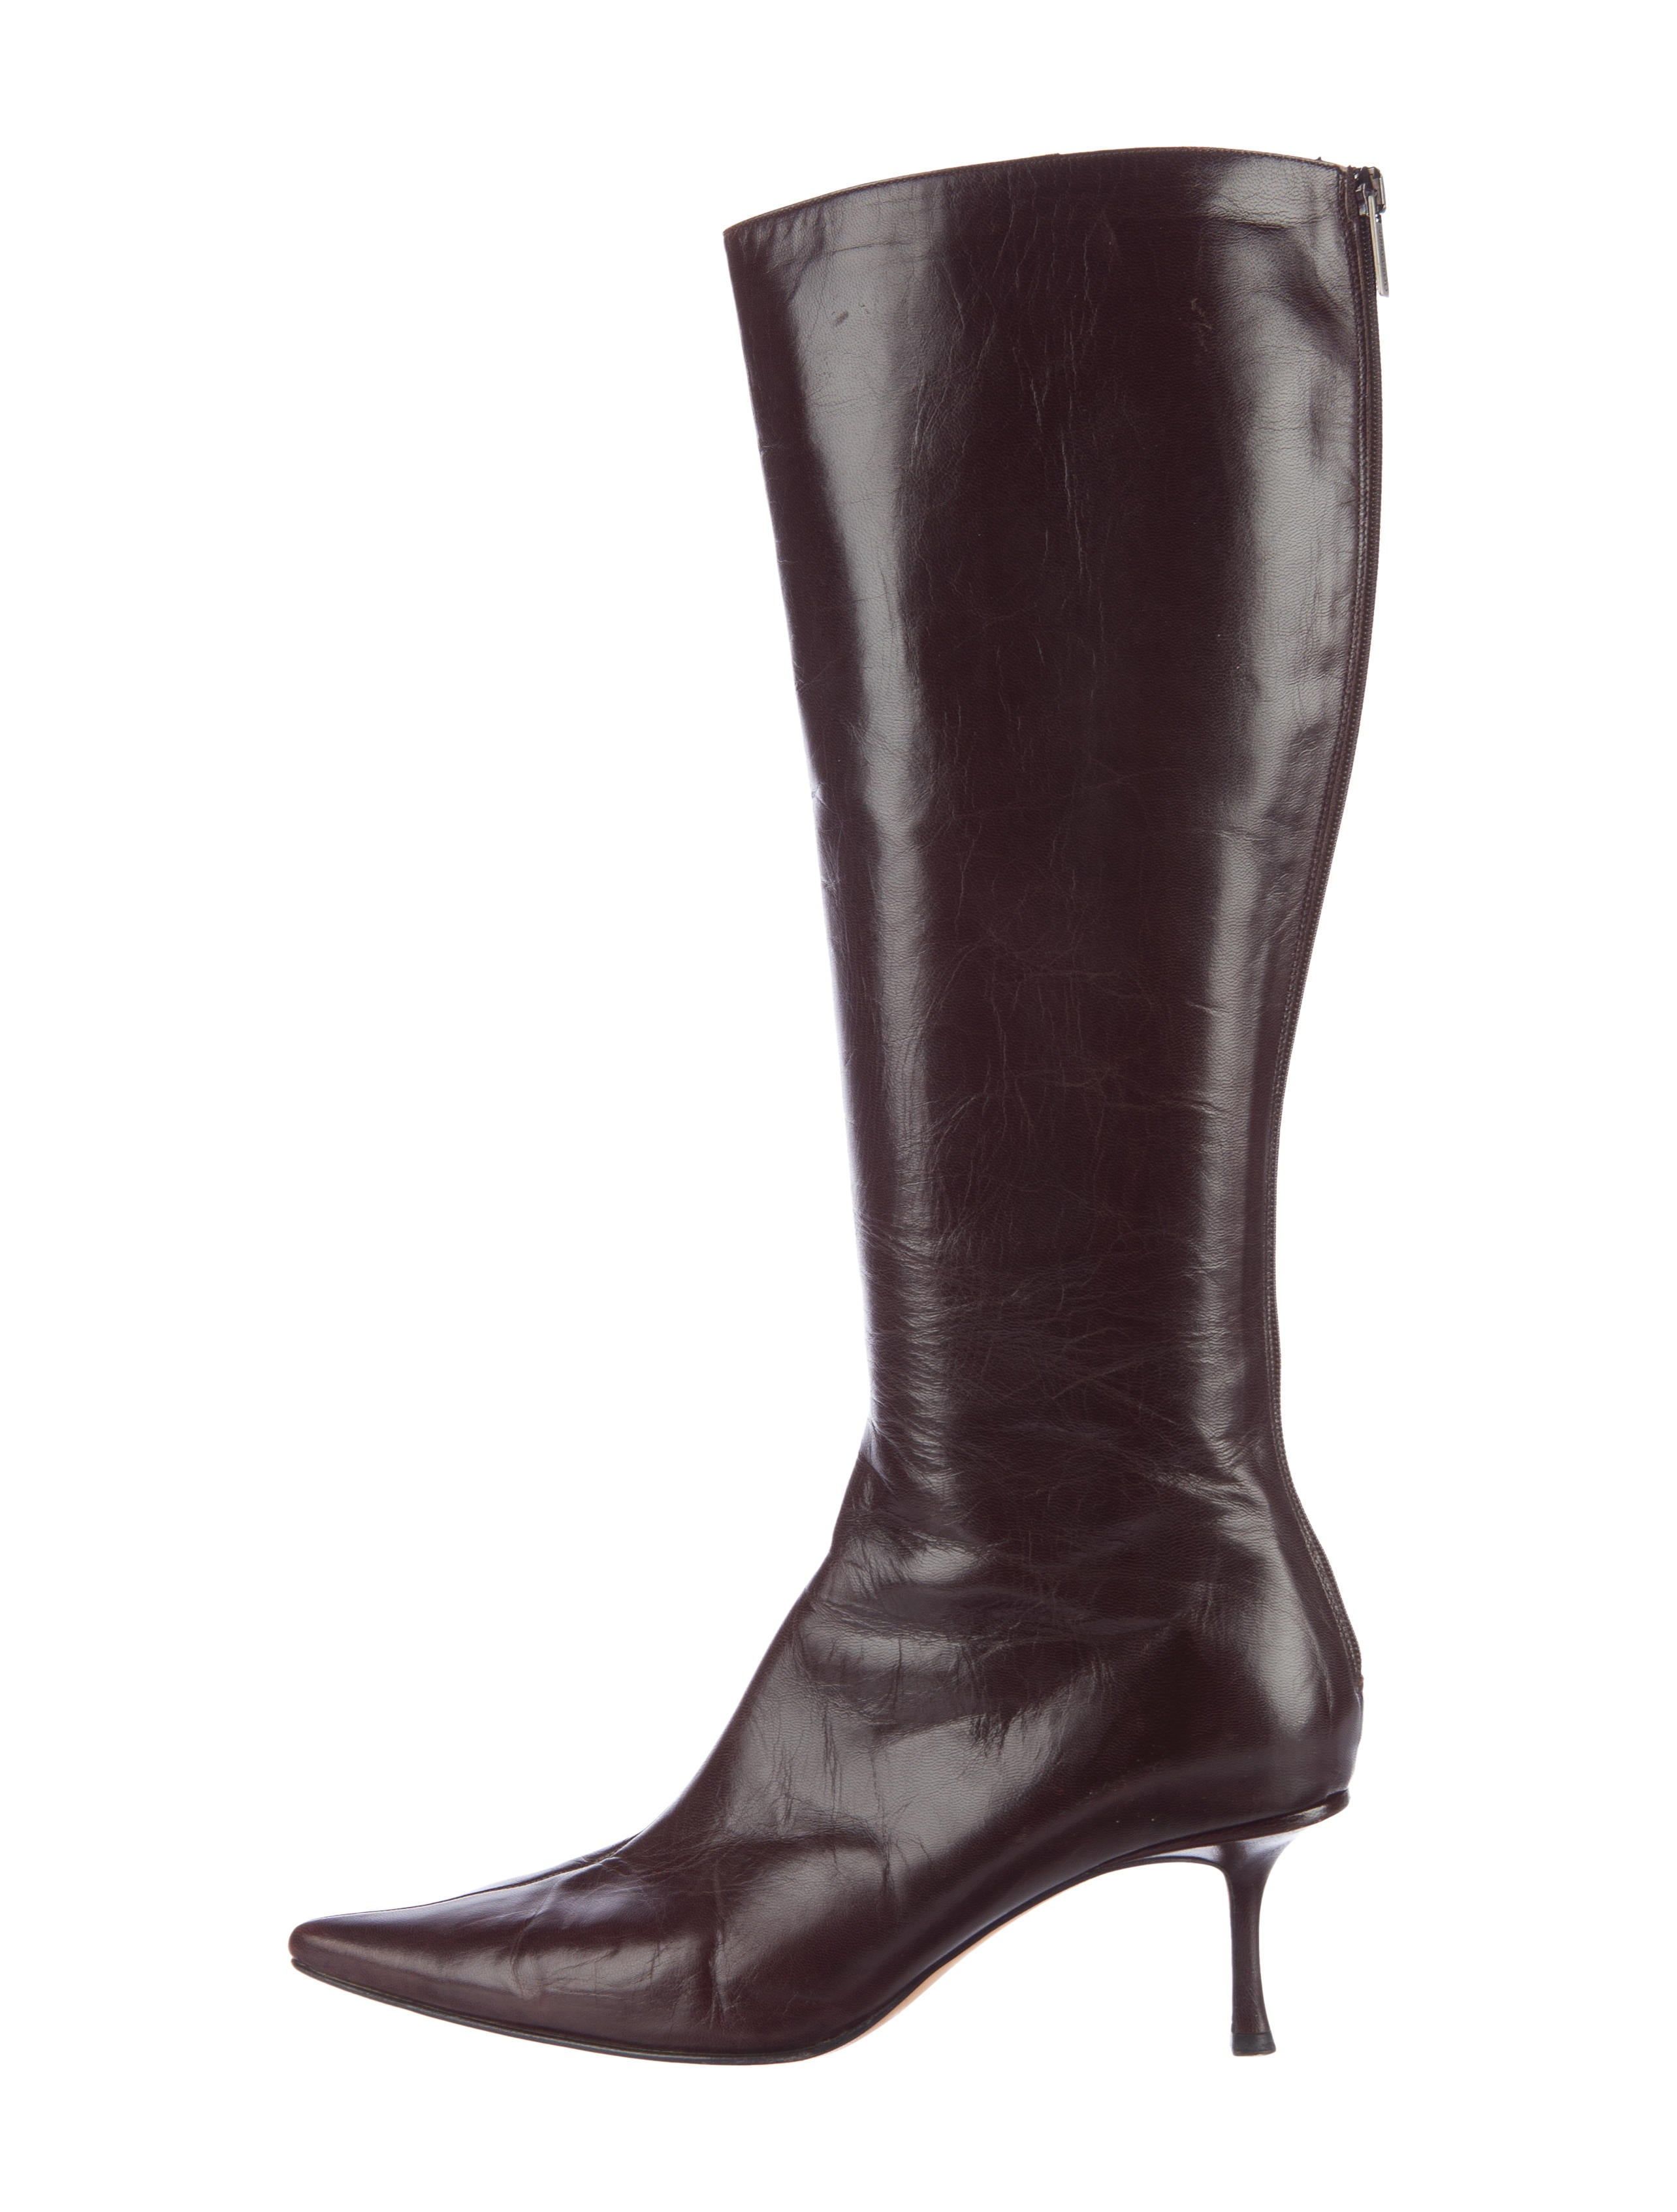 jimmy choo pointed toe knee high boots shoes jim60182